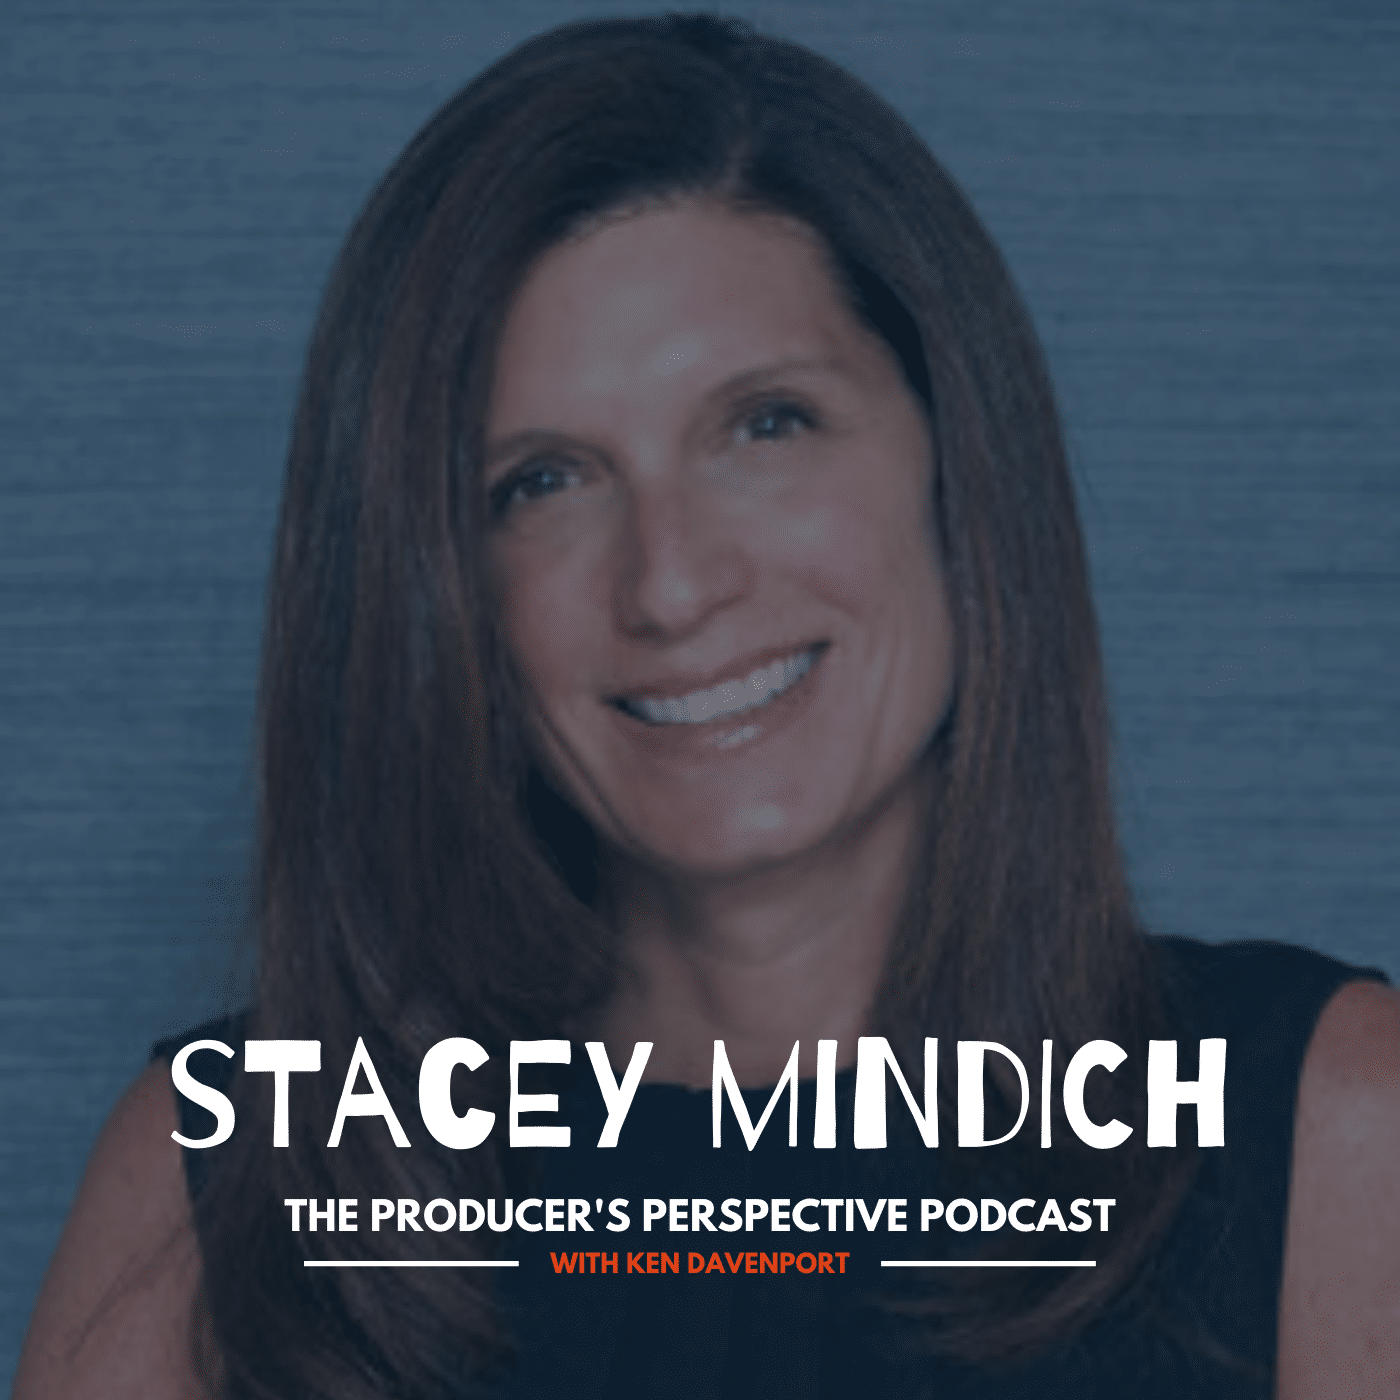 Ken Davenport's The Producer's Perspective Podcast Episode 109 - Stacey Mindich